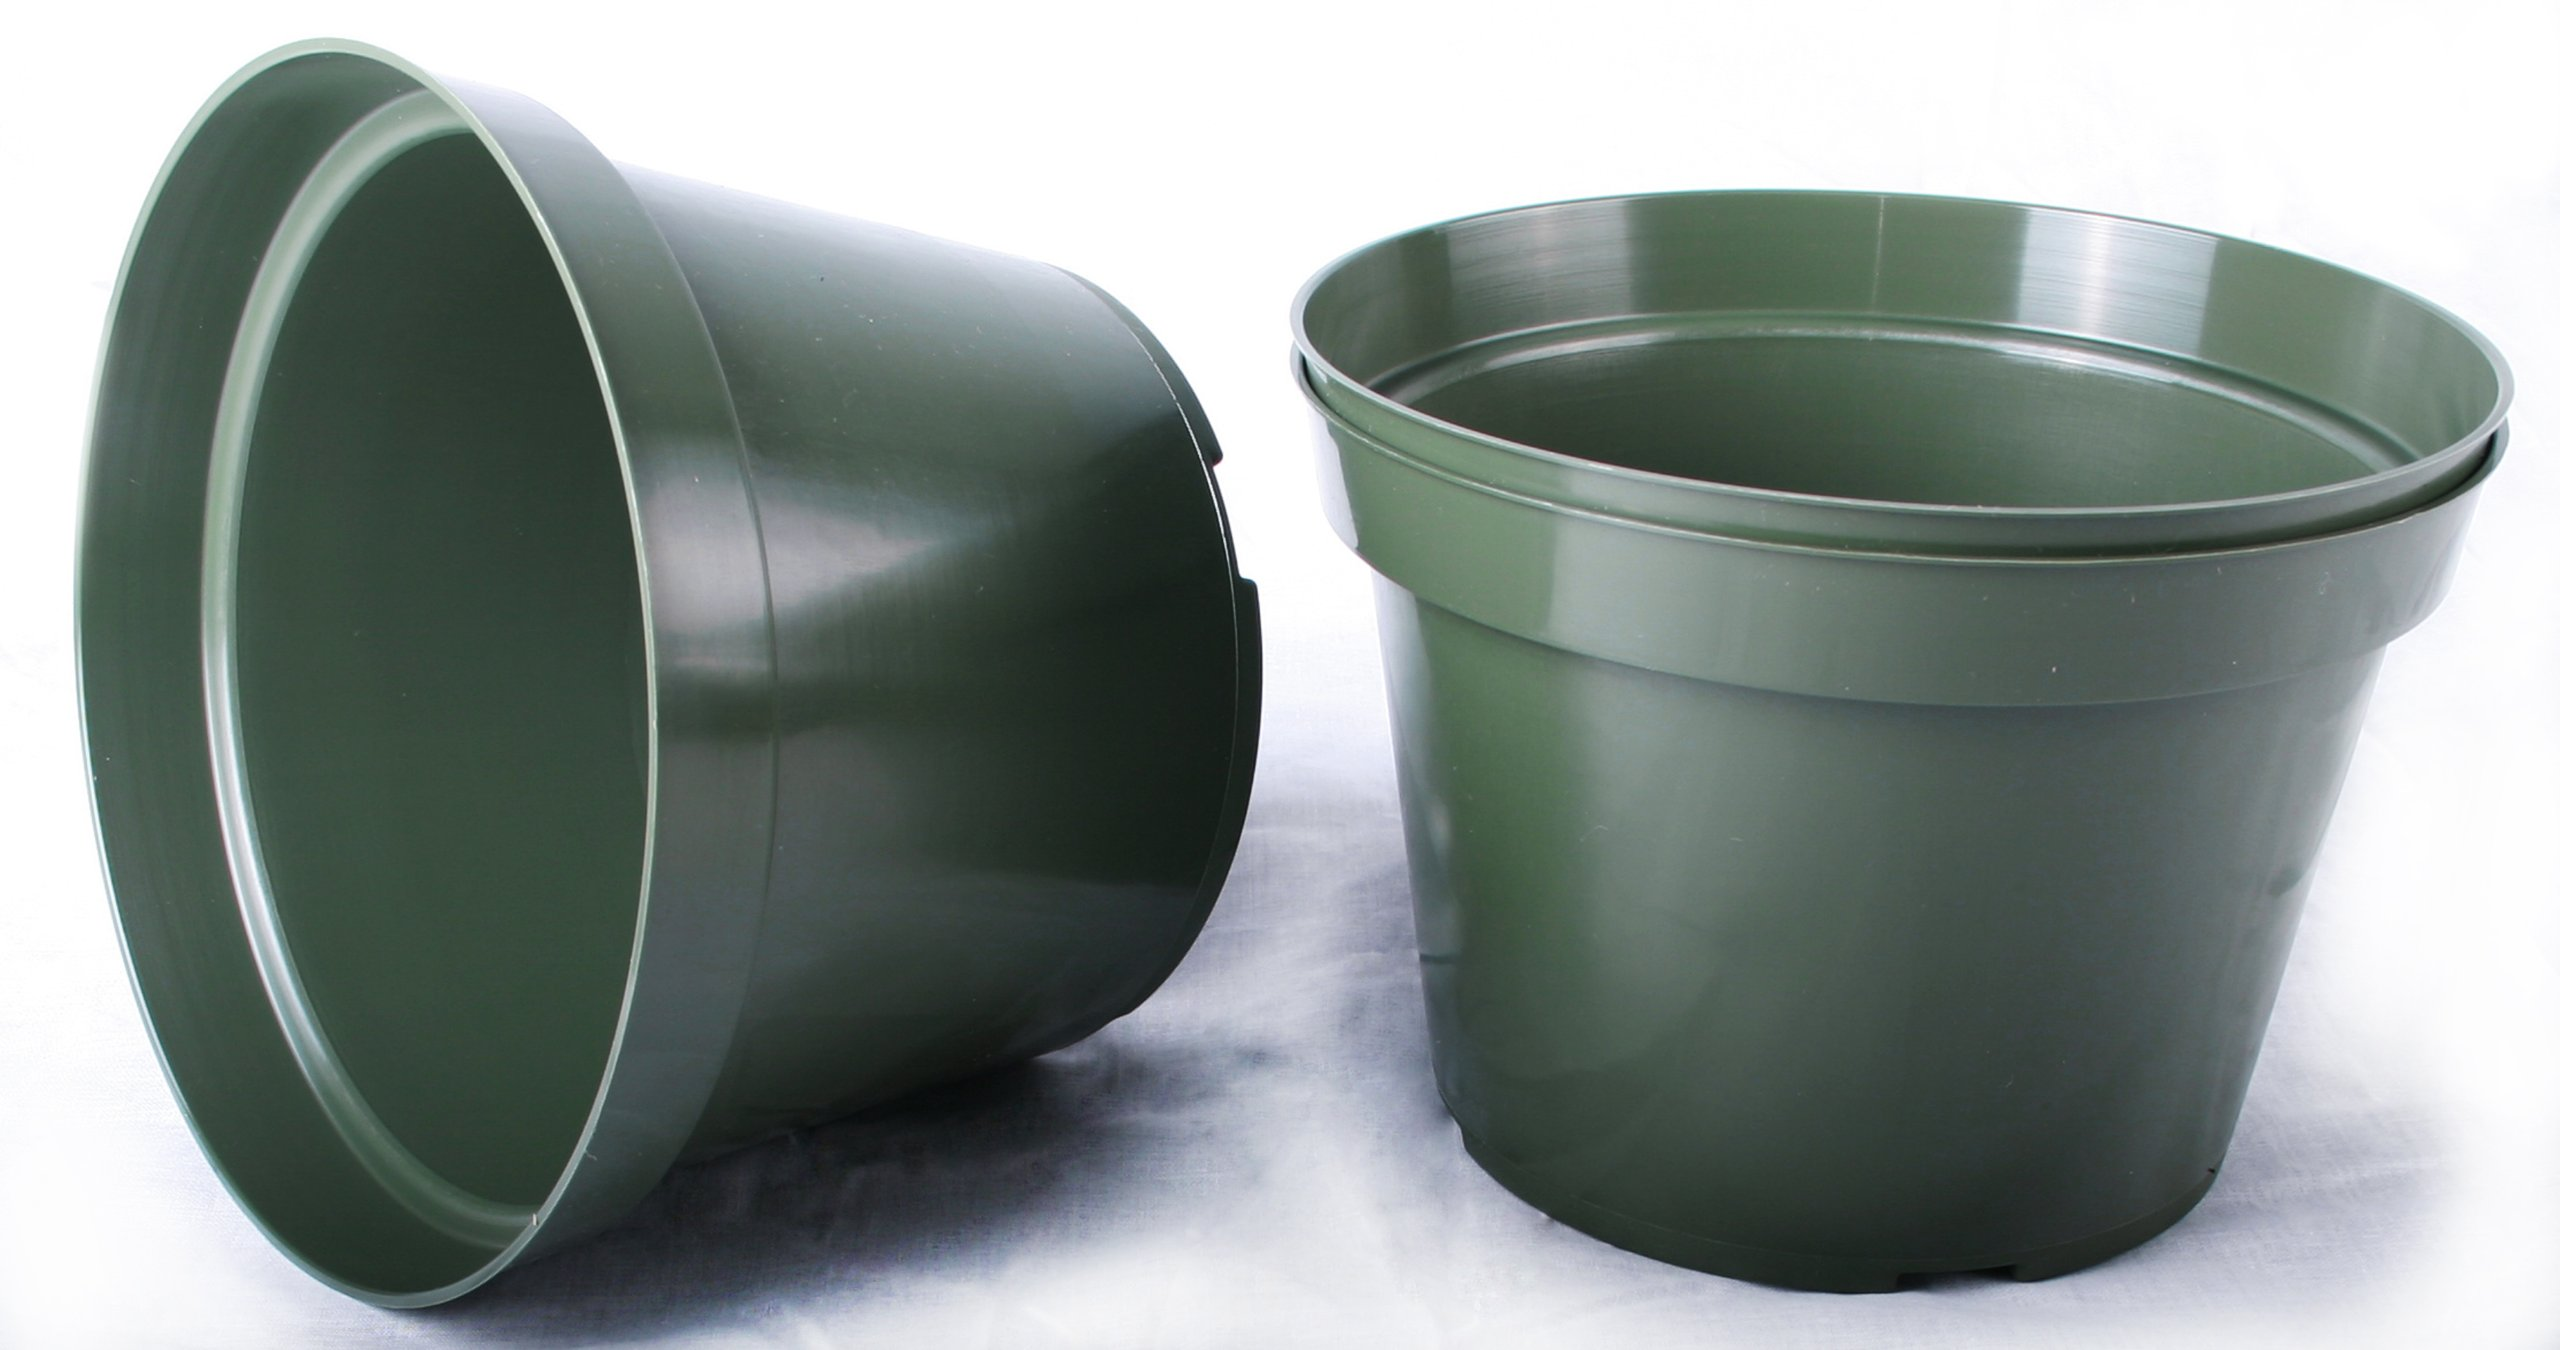 12 NEW 10 Inch Standard Plastic Nursery Pots ~ Pots ARE 10 Inch Round At the Top and 7.3 Inch Deep.